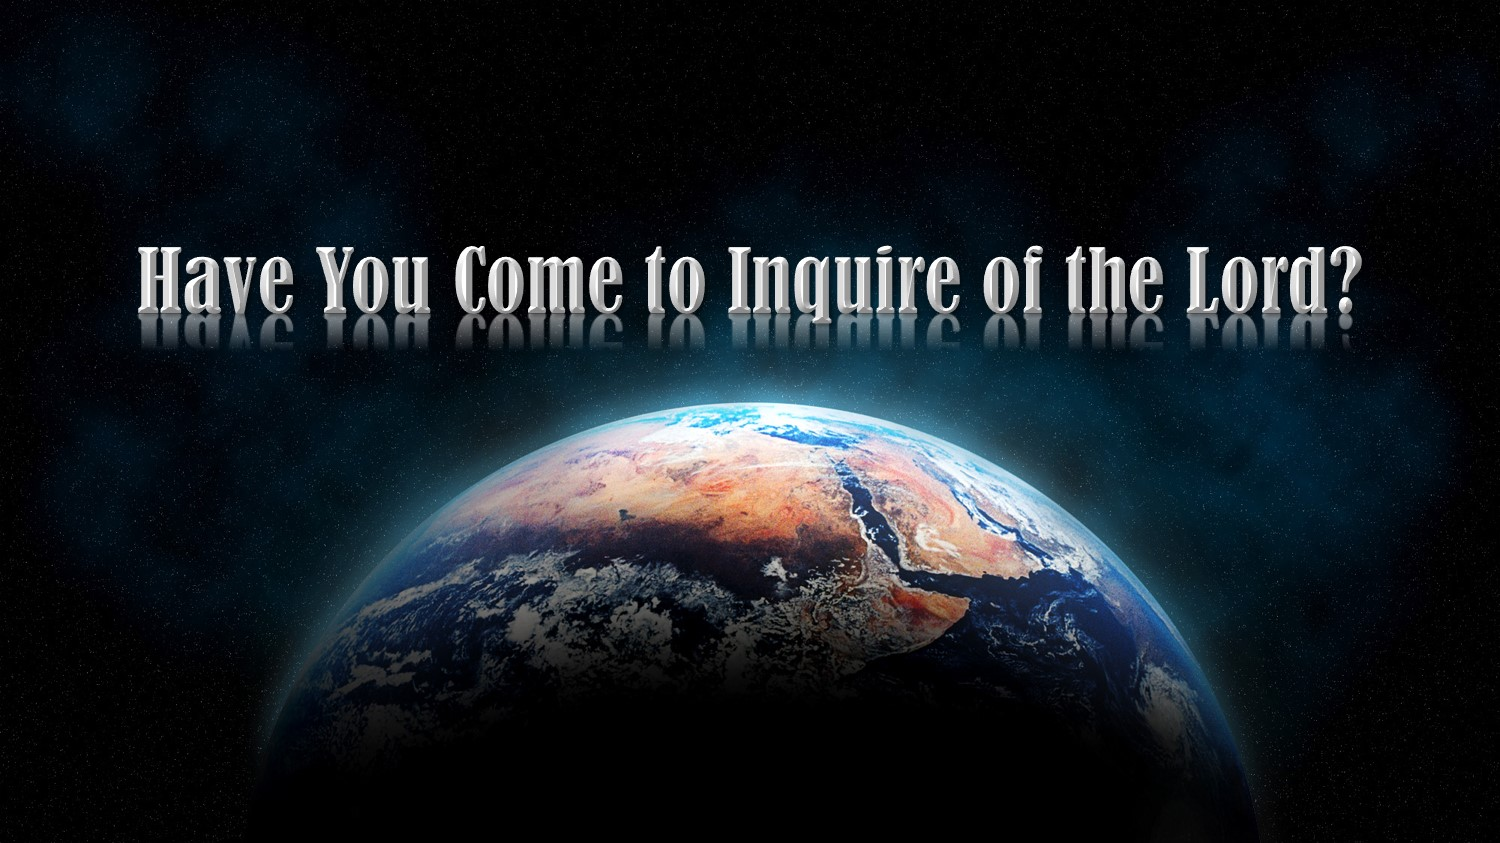 Have you come to inquire of the Lord